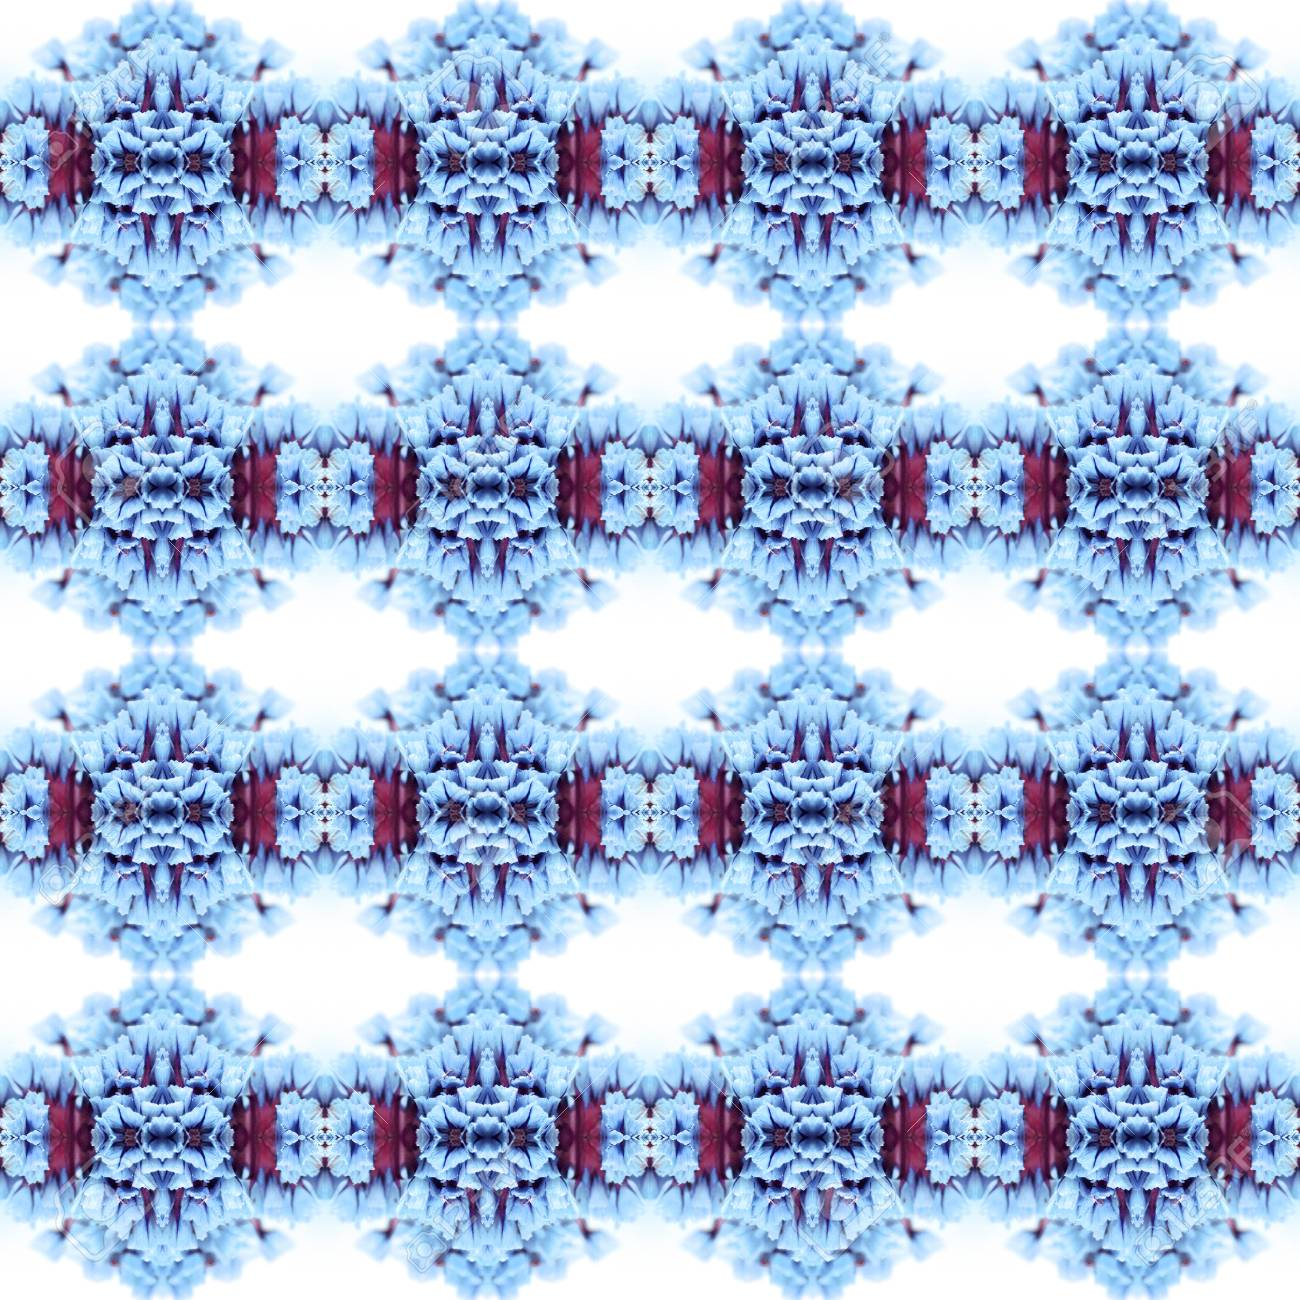 Abstract flowers seamless pattern background. Kaleidoscope from flowers. Hydraulic tile design. - 104074916